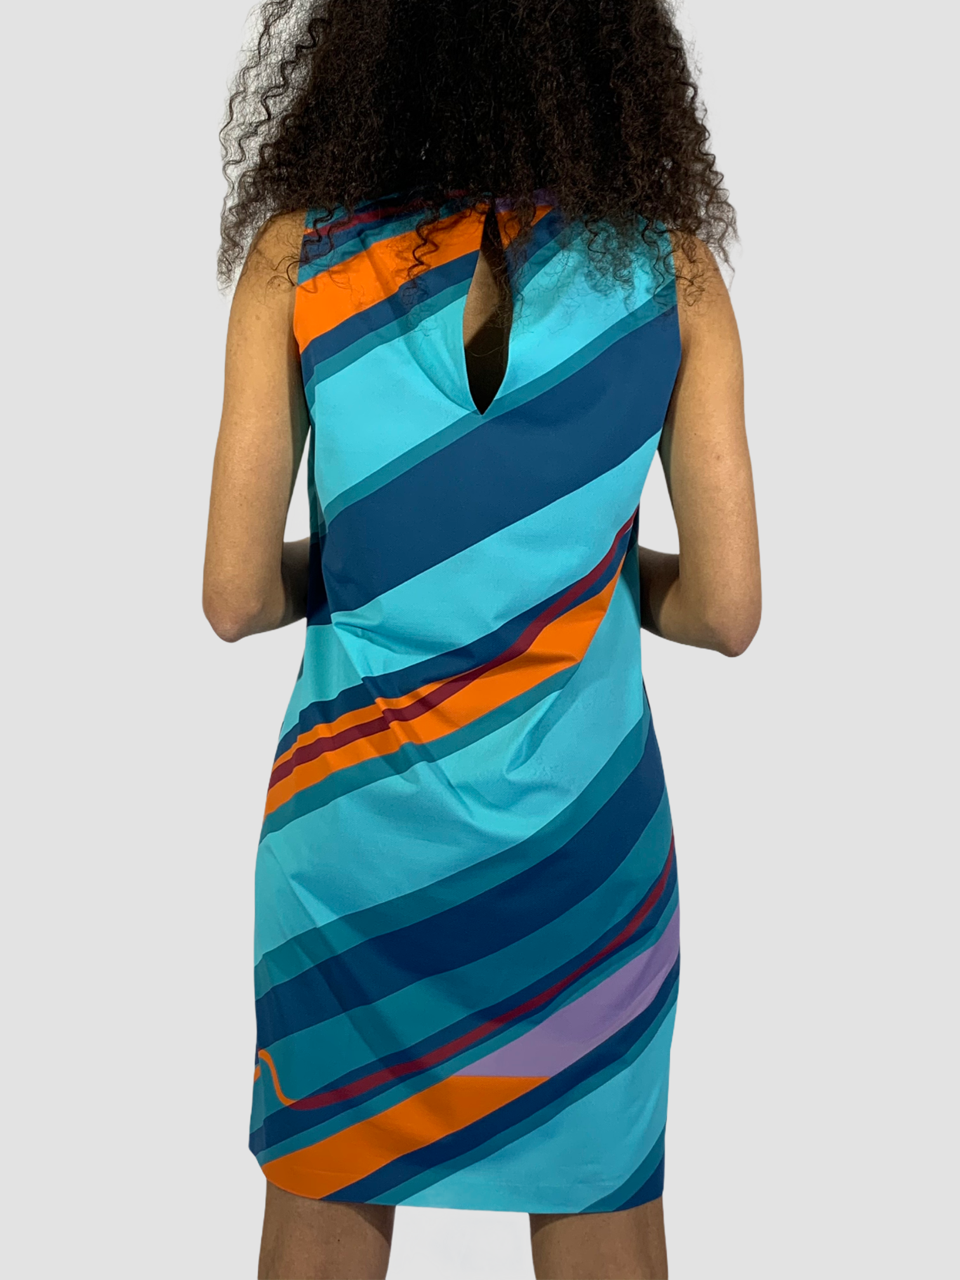 SHOPPING ON LINE RRD ROBERTO RICCI DESIGN SIXTY DRESS WRAP LADY NEW  COLLECTION  WOMEN'S  SPRING  SUMMER 2021